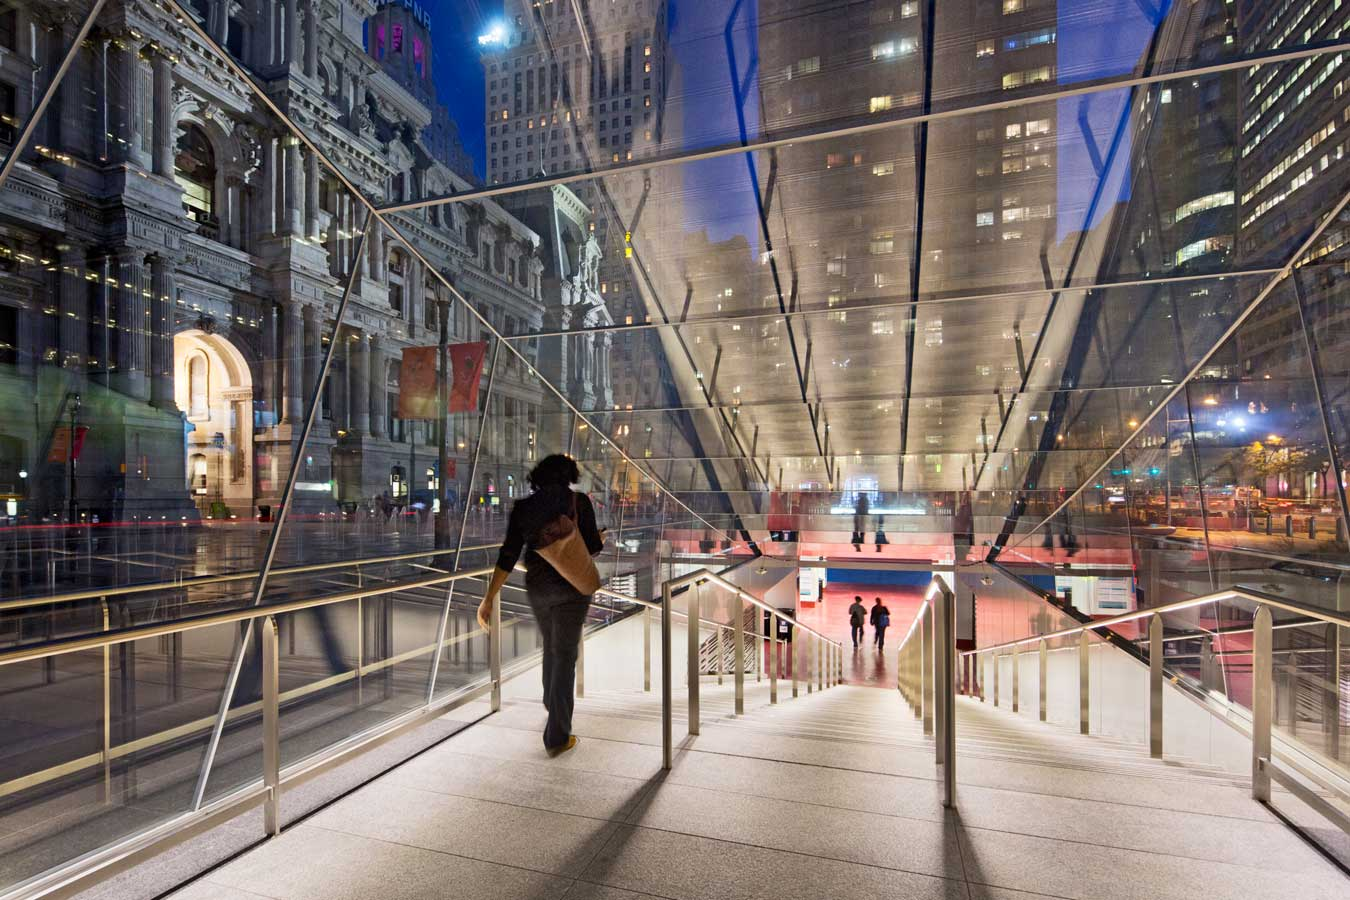 <p>Self-cleaning, shatterproof glass, and graffiti-resistant film help to protect and maintain the entryway pavilions to underground transit. <br><small>&copy; James Ewing Photography</small></p>